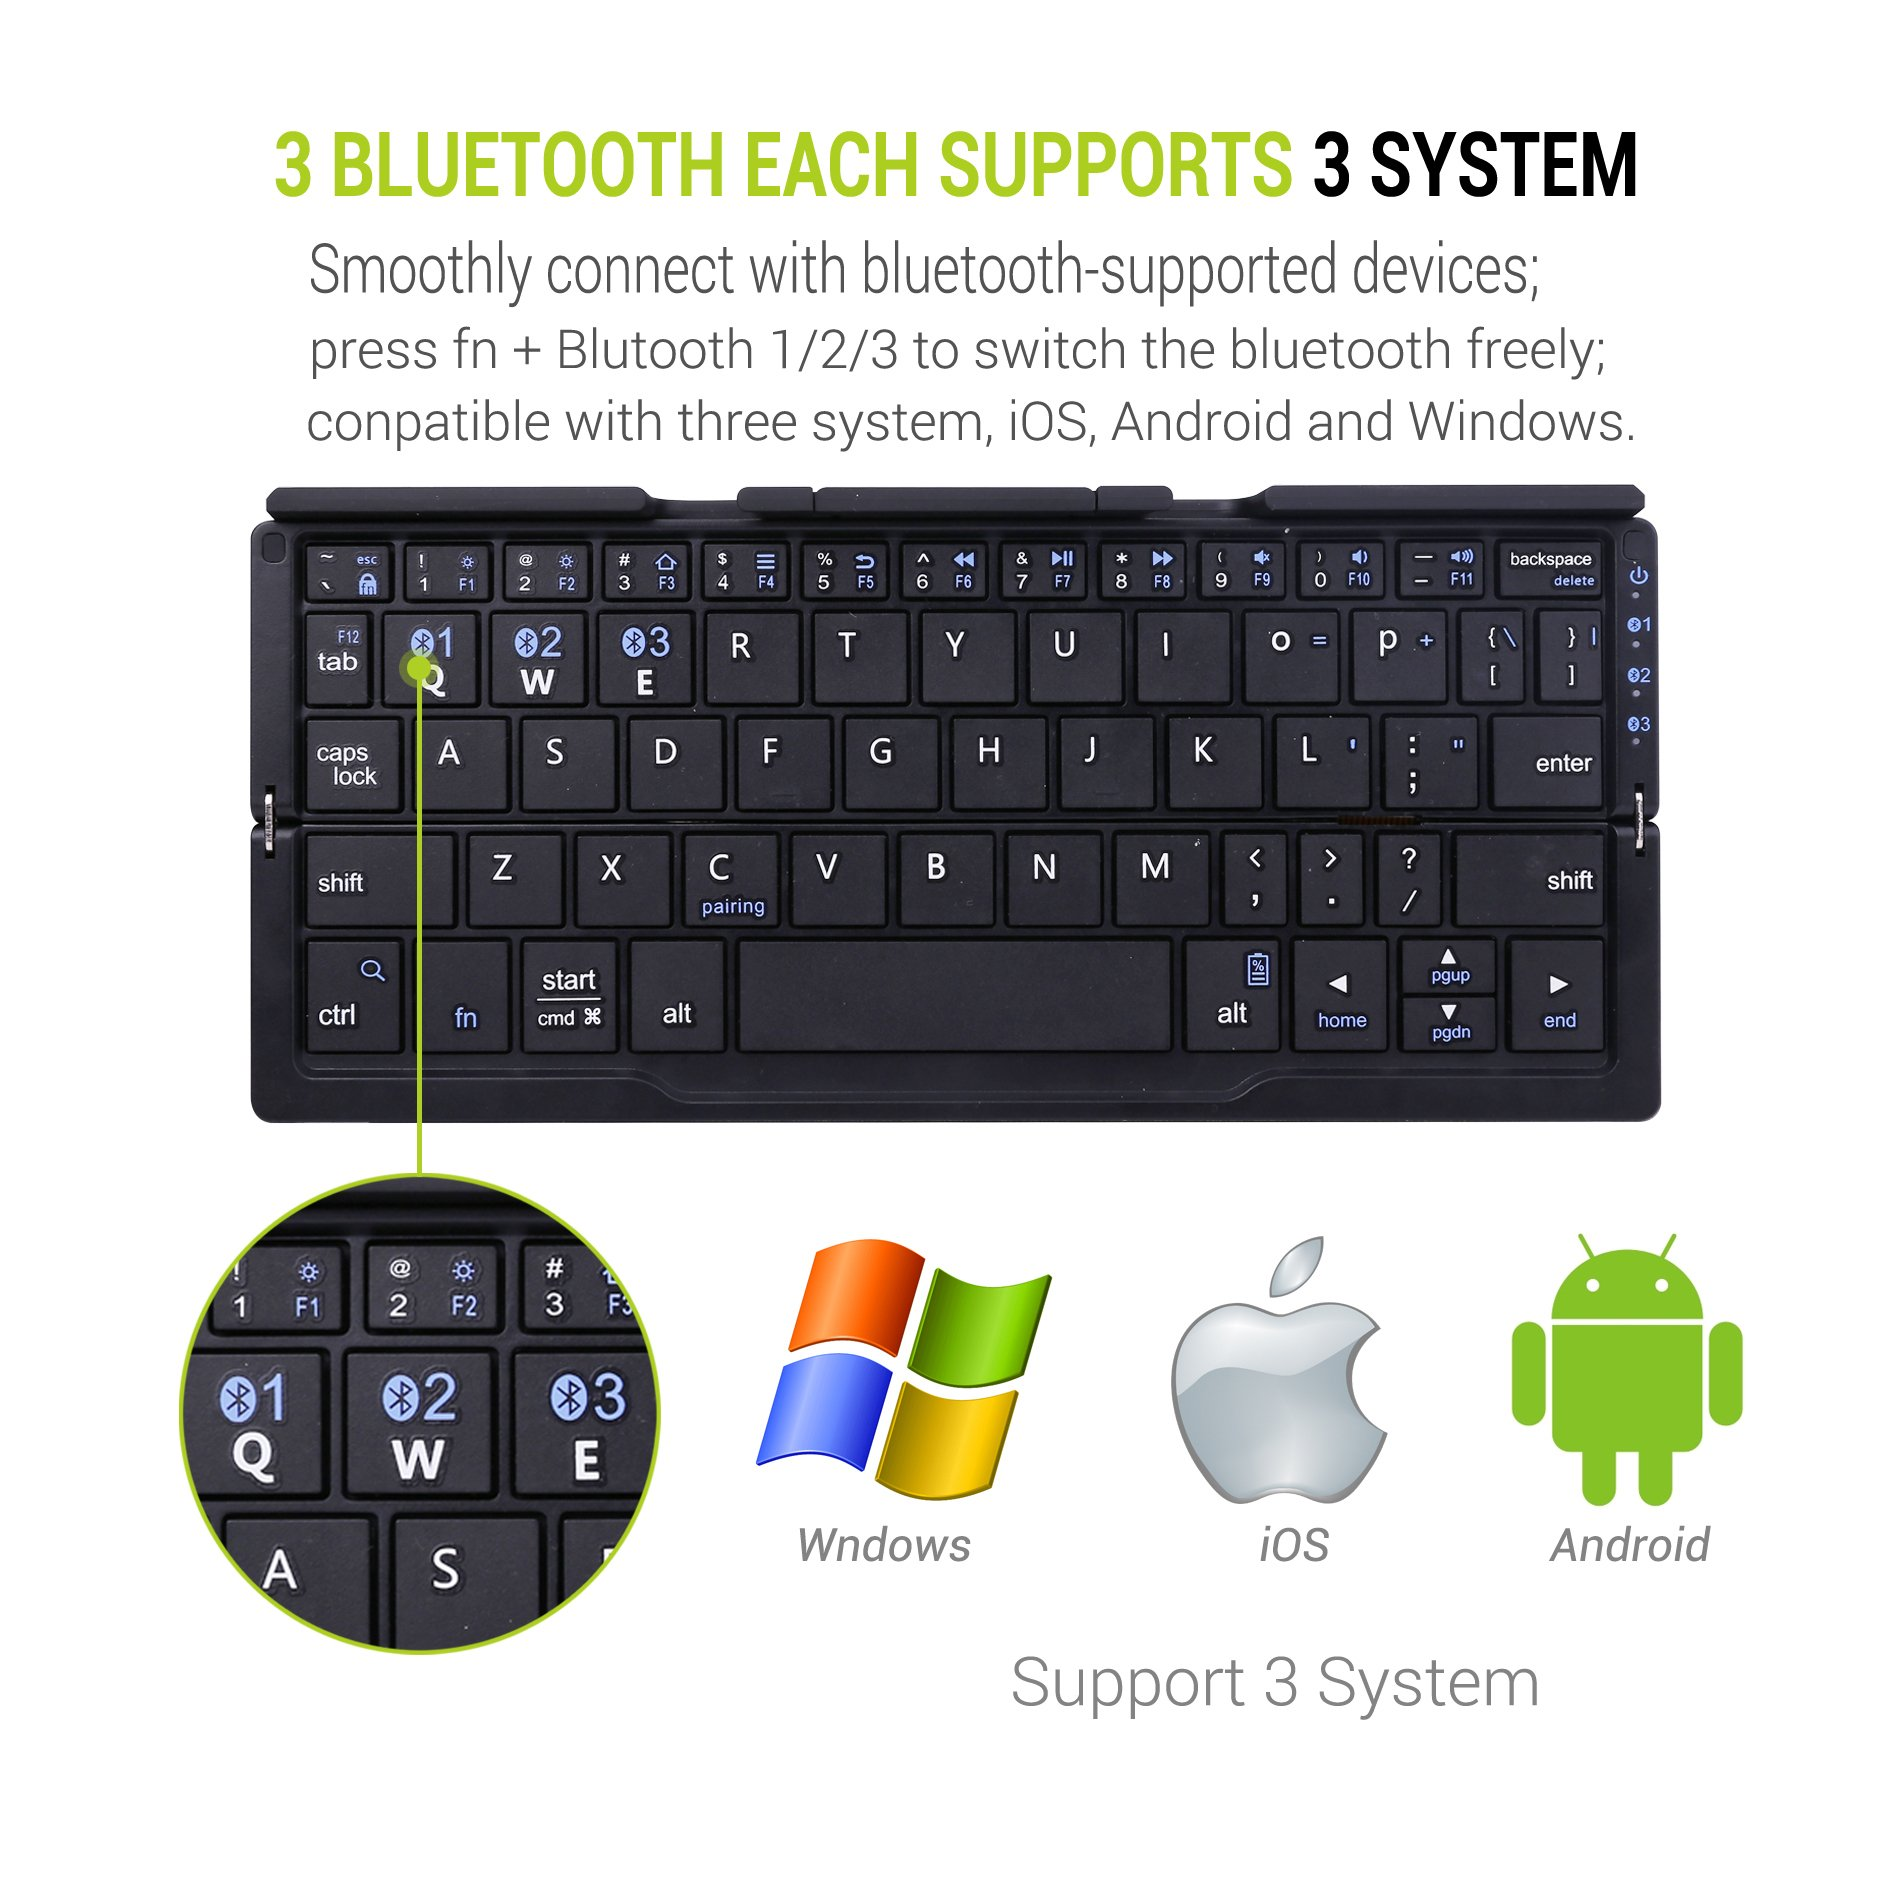 Zerolemon Mini Foldable Portable Bluetooth Keyboard, Wireless Bluetooth Keyboard with Retractable Stands, Rechargeable Battery for iOS, Android, Windows Tablet, Smartphone, iPad etc - Black by ZEROLEMON (Image #4)